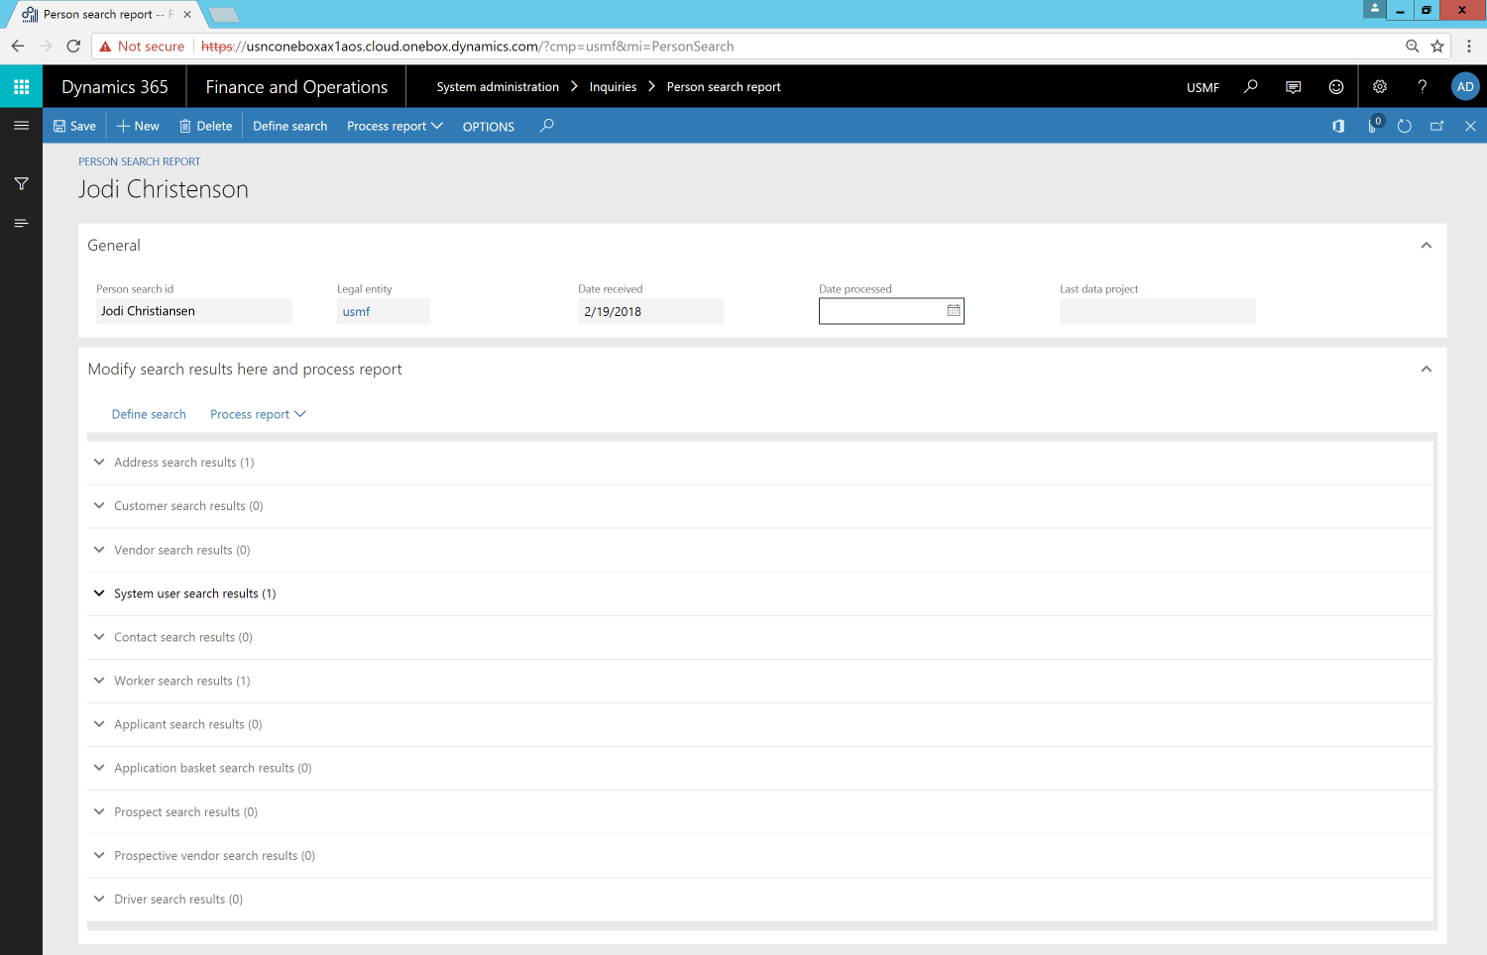 Person search report - Finance & Operations | Dynamics 365 ...